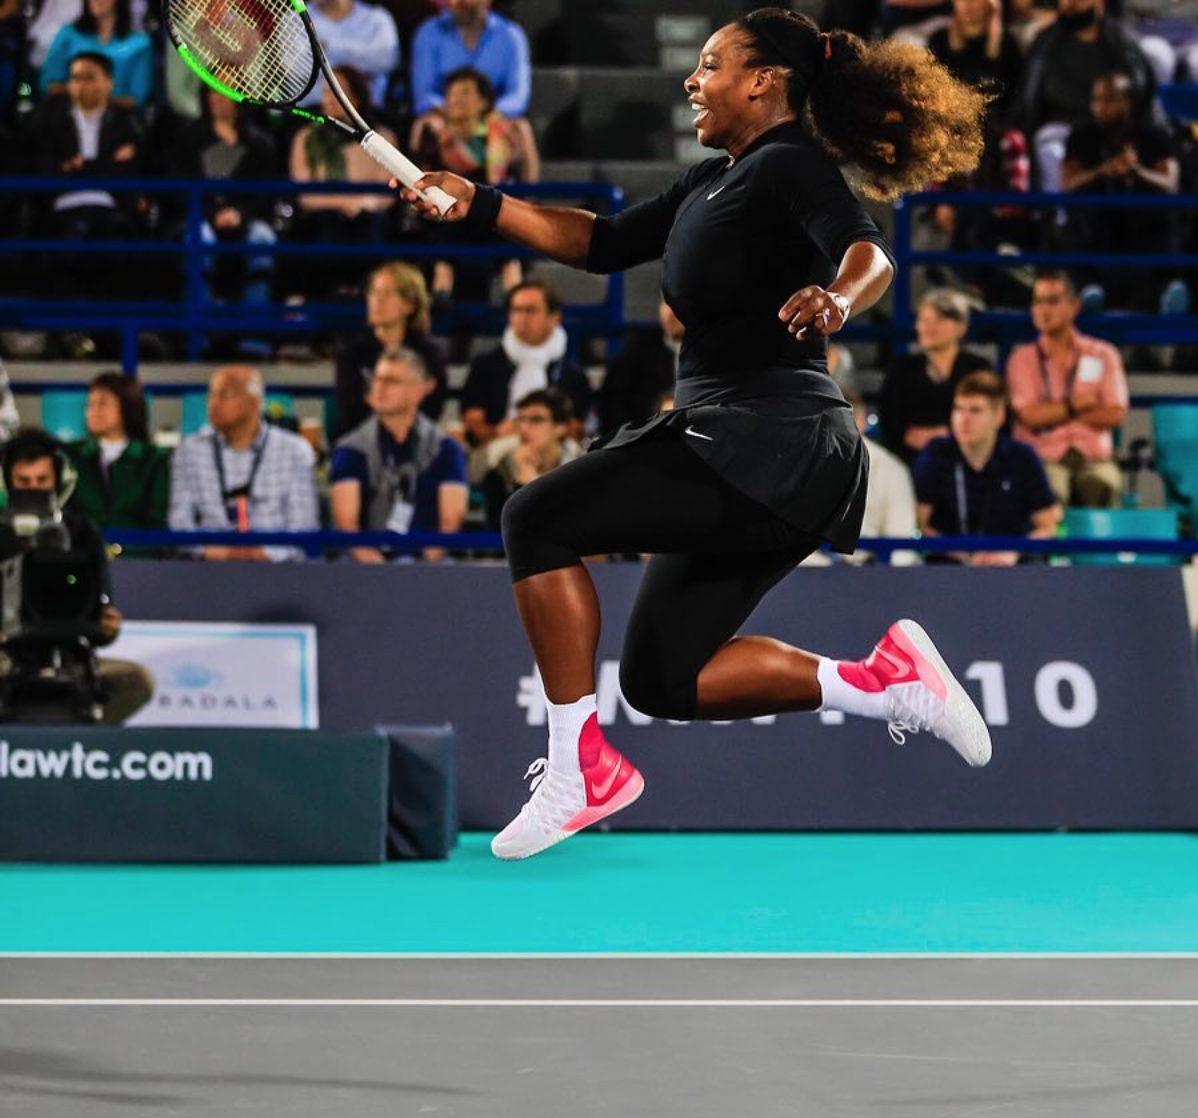 Serena at MWTC. Posted by  @Serena Williams  on December 20, 2018.